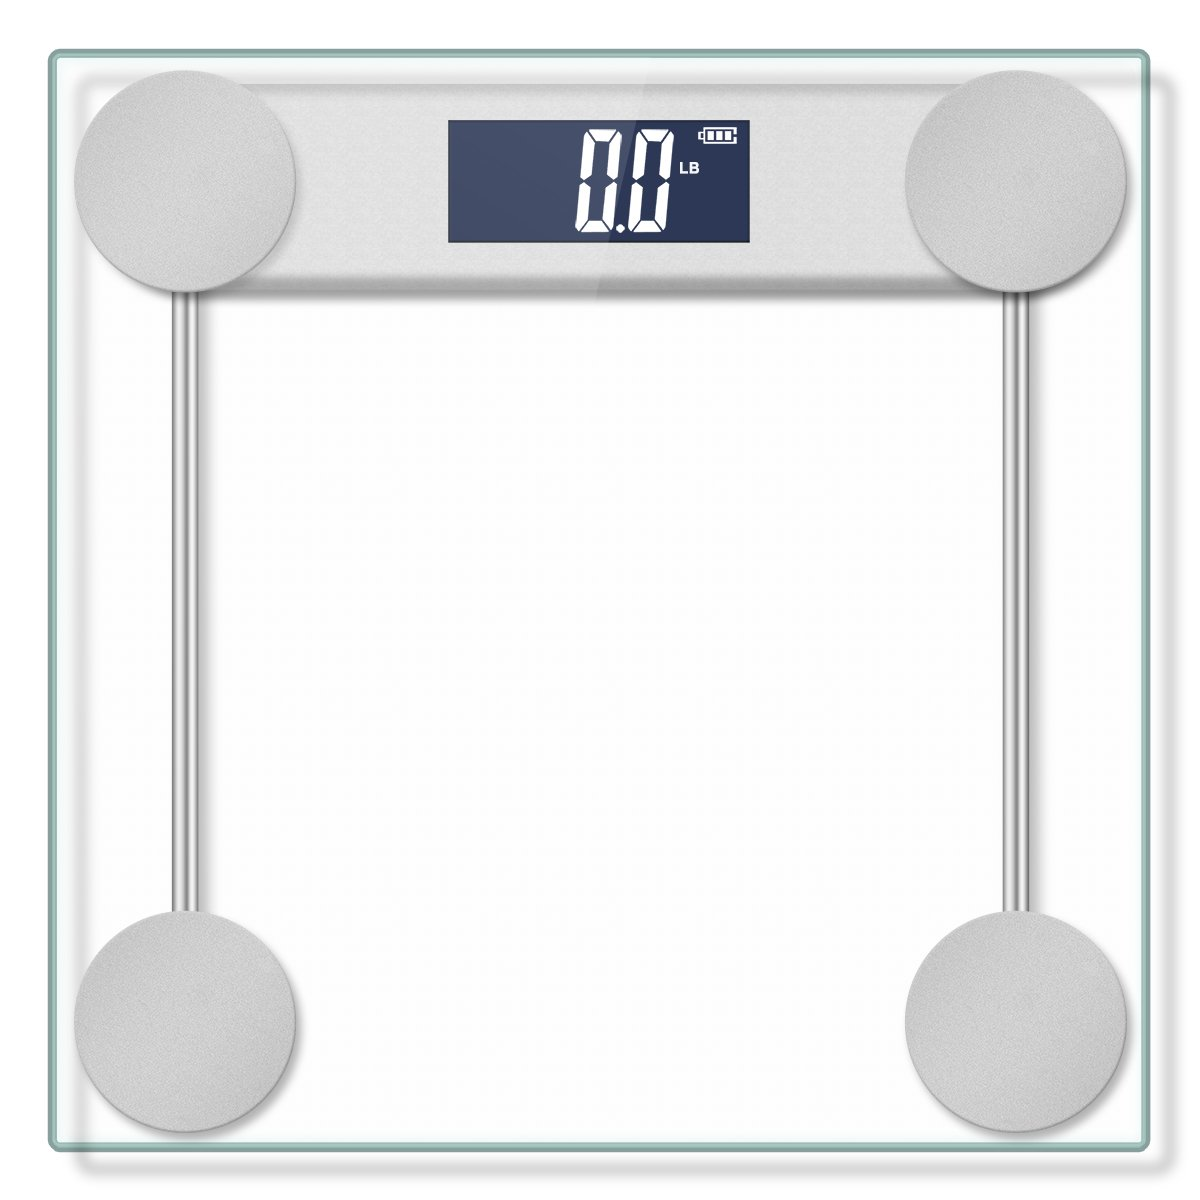 400lb / 180kg Electronic Bathroom Scale with Tempered Right Angle Glass Balance Platform and Advanced Step-On Technology, Digital Weight Scale has Large Easy Read Backlit LCD Display … Yoobure